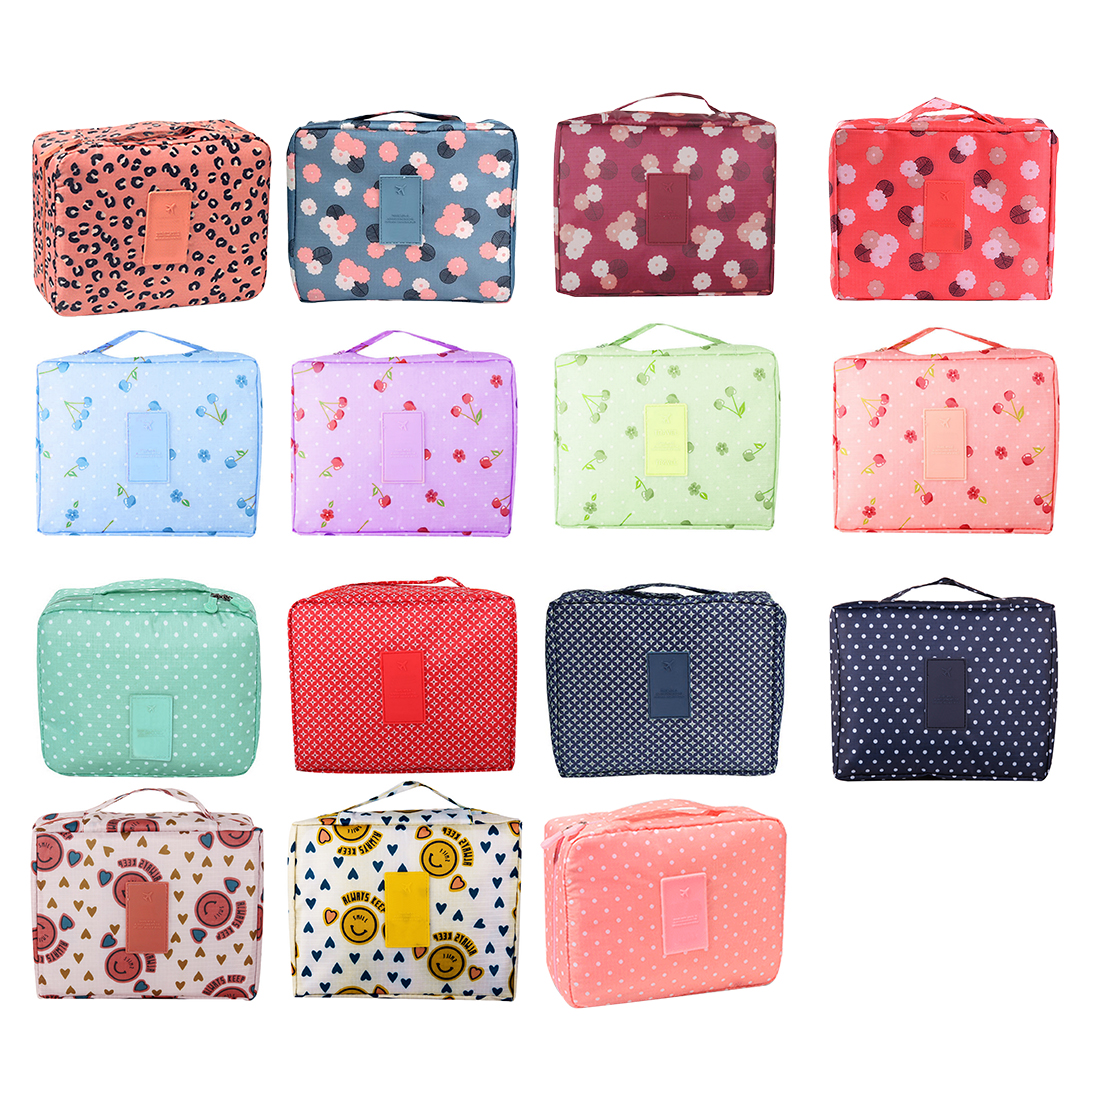 Travel Portable Storage Bag Waterproof Oxford Cloth Underwear Finishing Kit Suitcases Cosmetic Organizer Makeup Bags